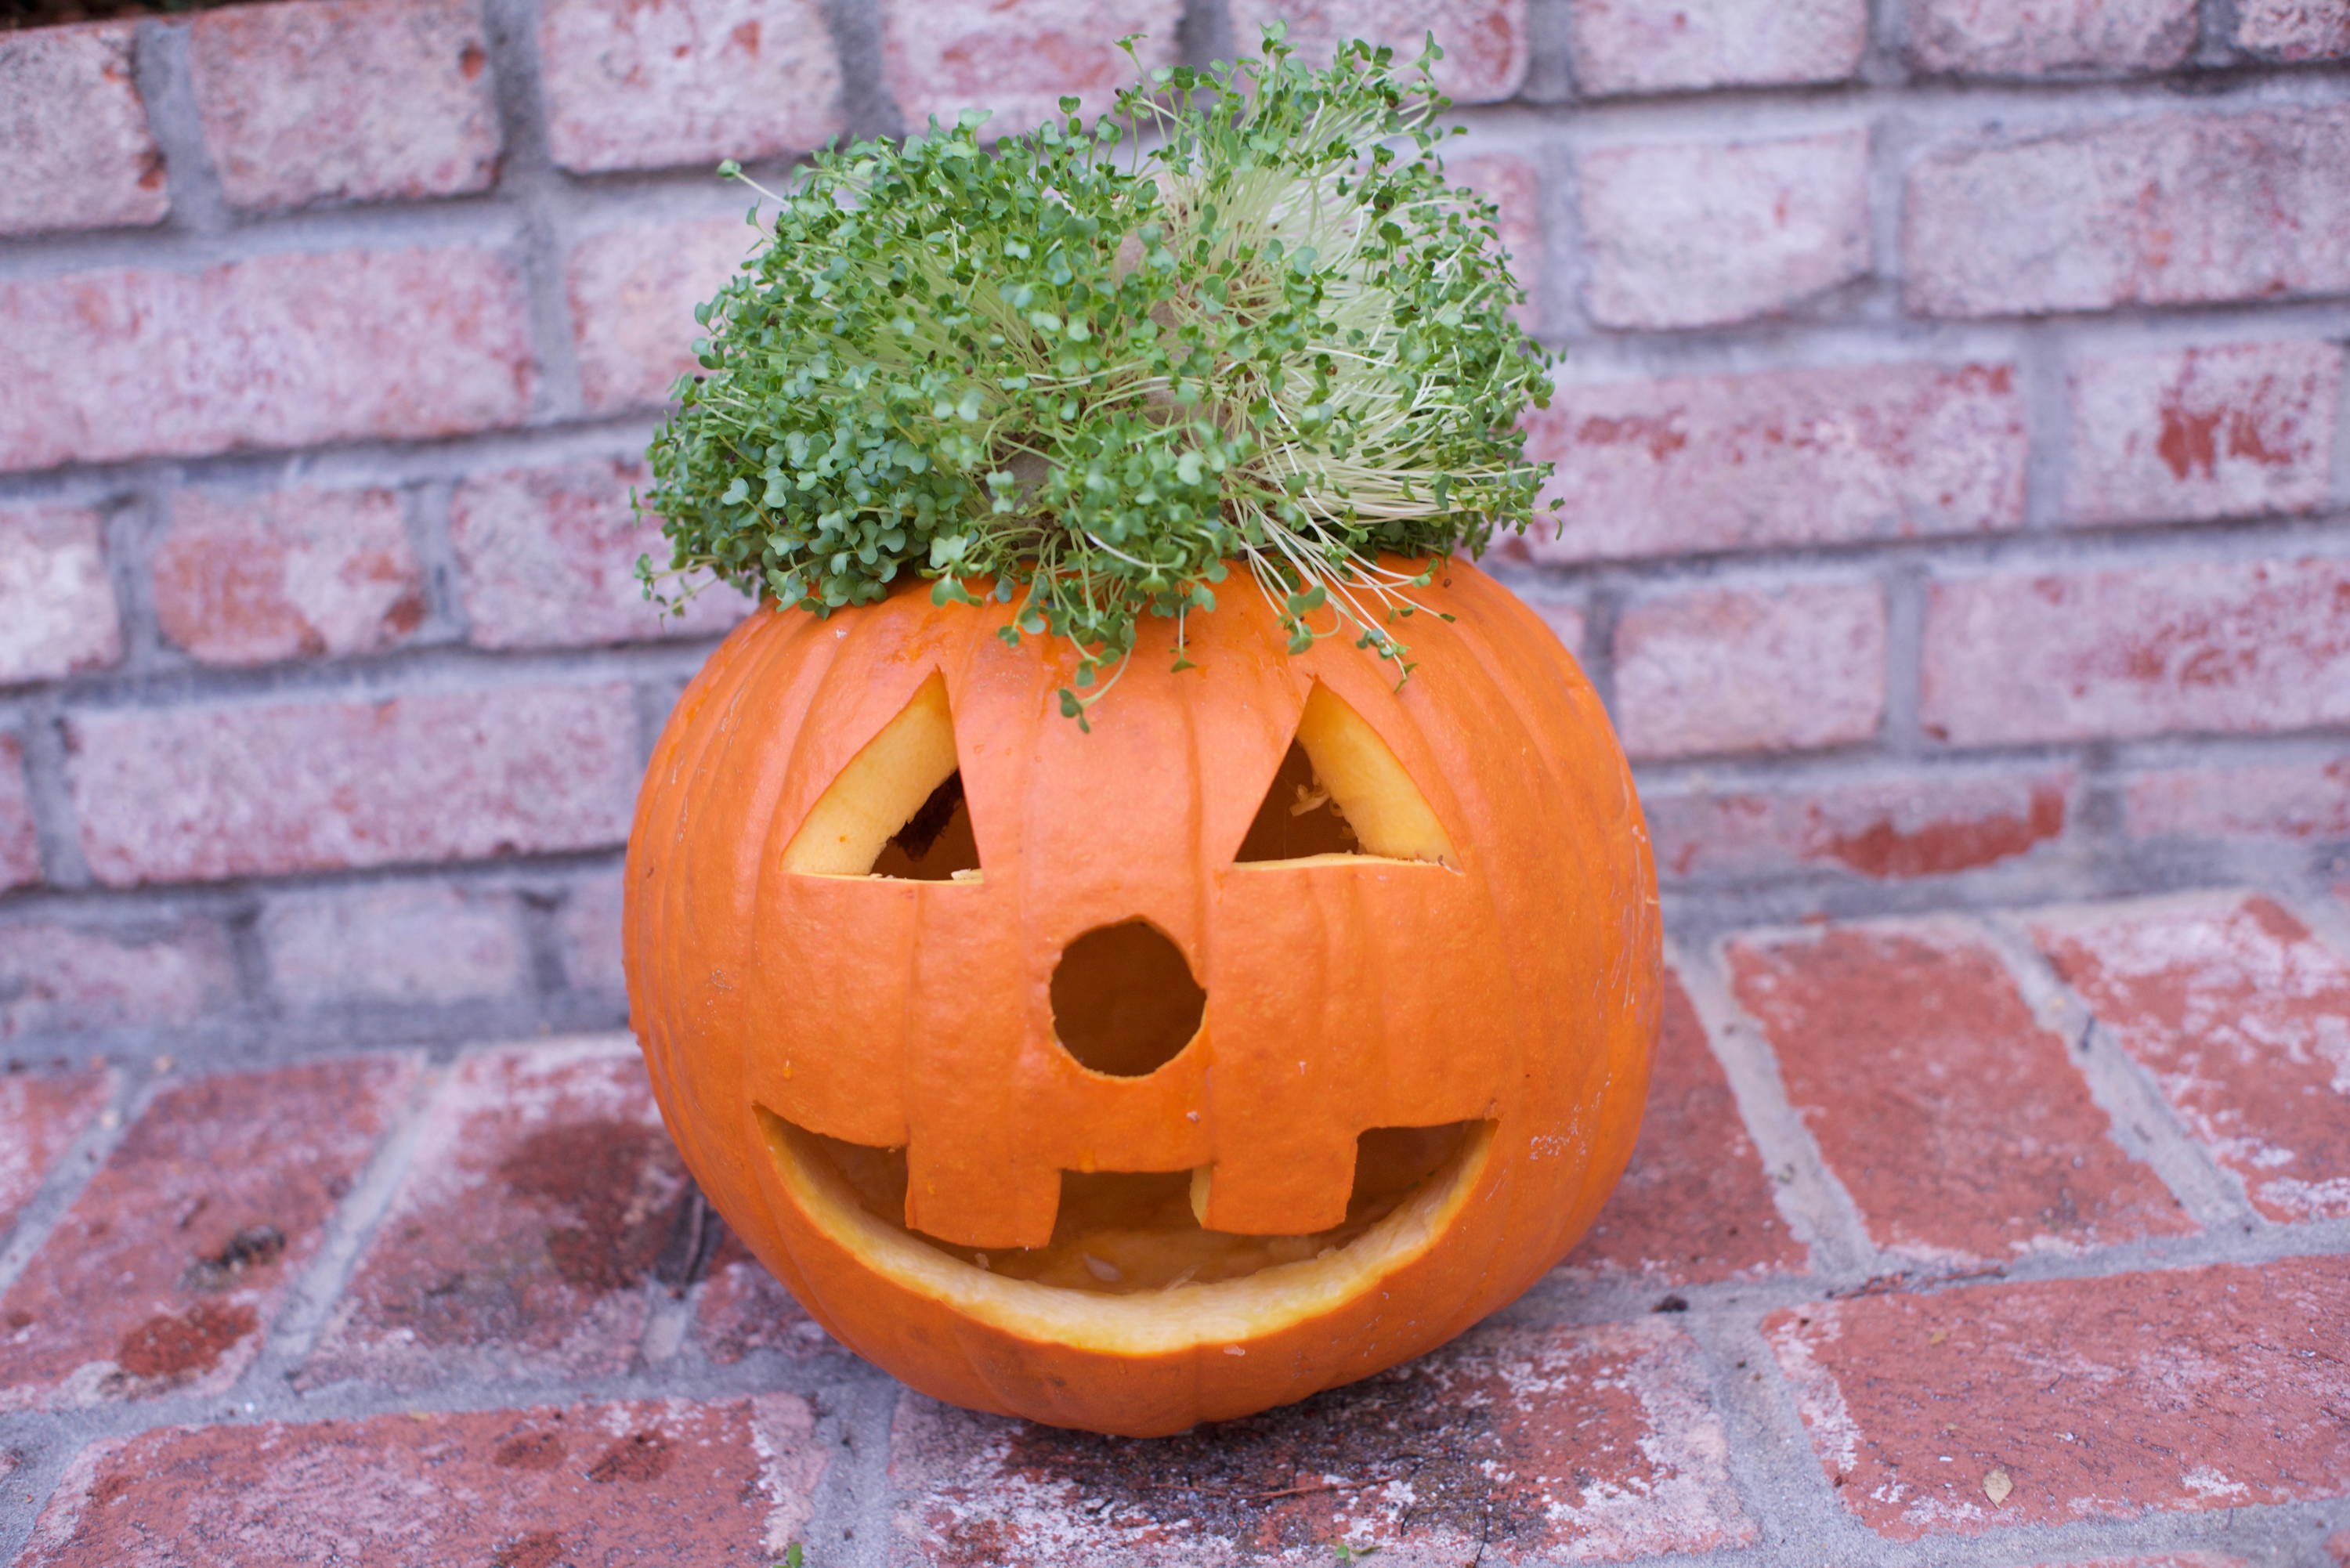 Carved pumpkin jack-o-lantern with homegrown microgreens hair.